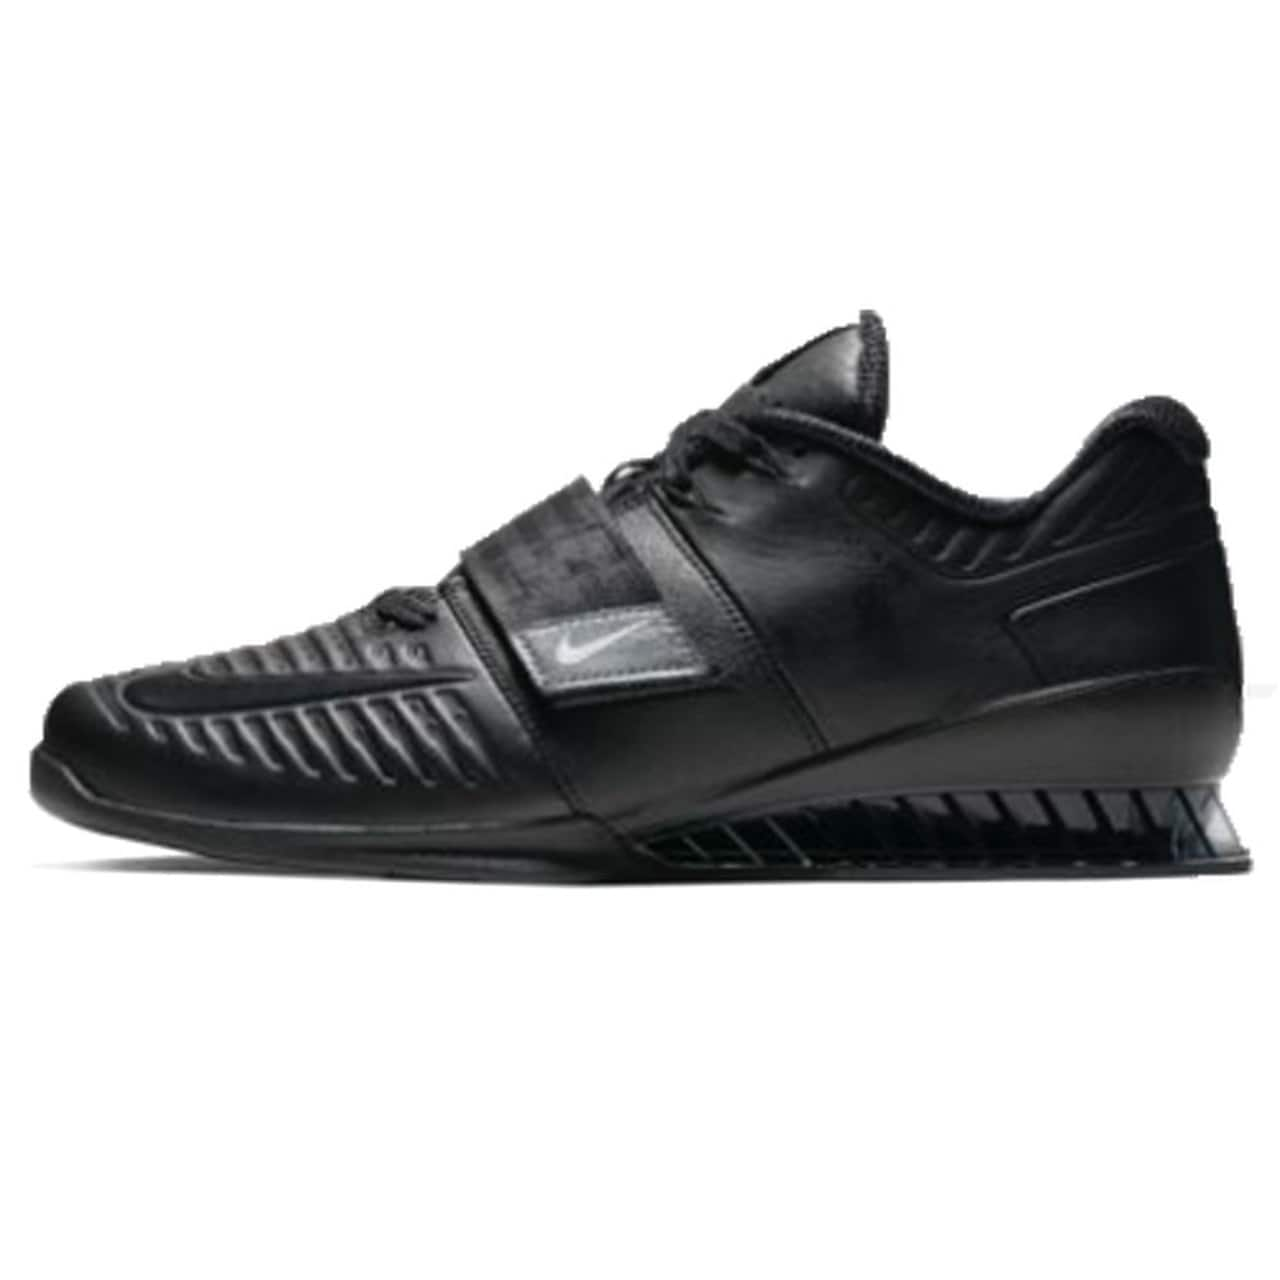 Nike romaleos 3xd weightlifting shoes (multiple colors) $99